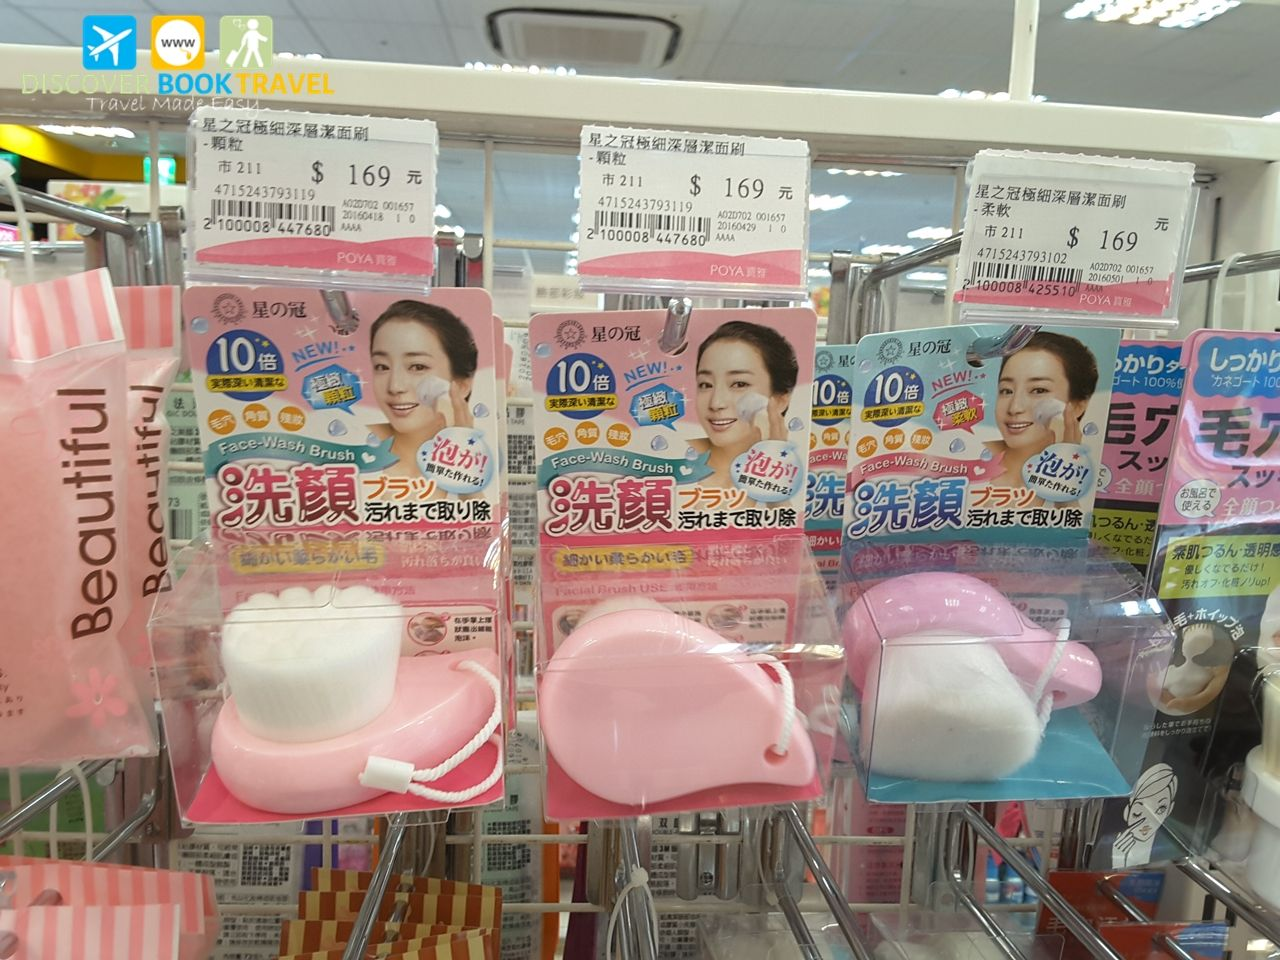 Top 10 Skincare Products To Buy In Taiwan Discover Book Travel Trending Skincare Popular Skin Care Products 10 Things